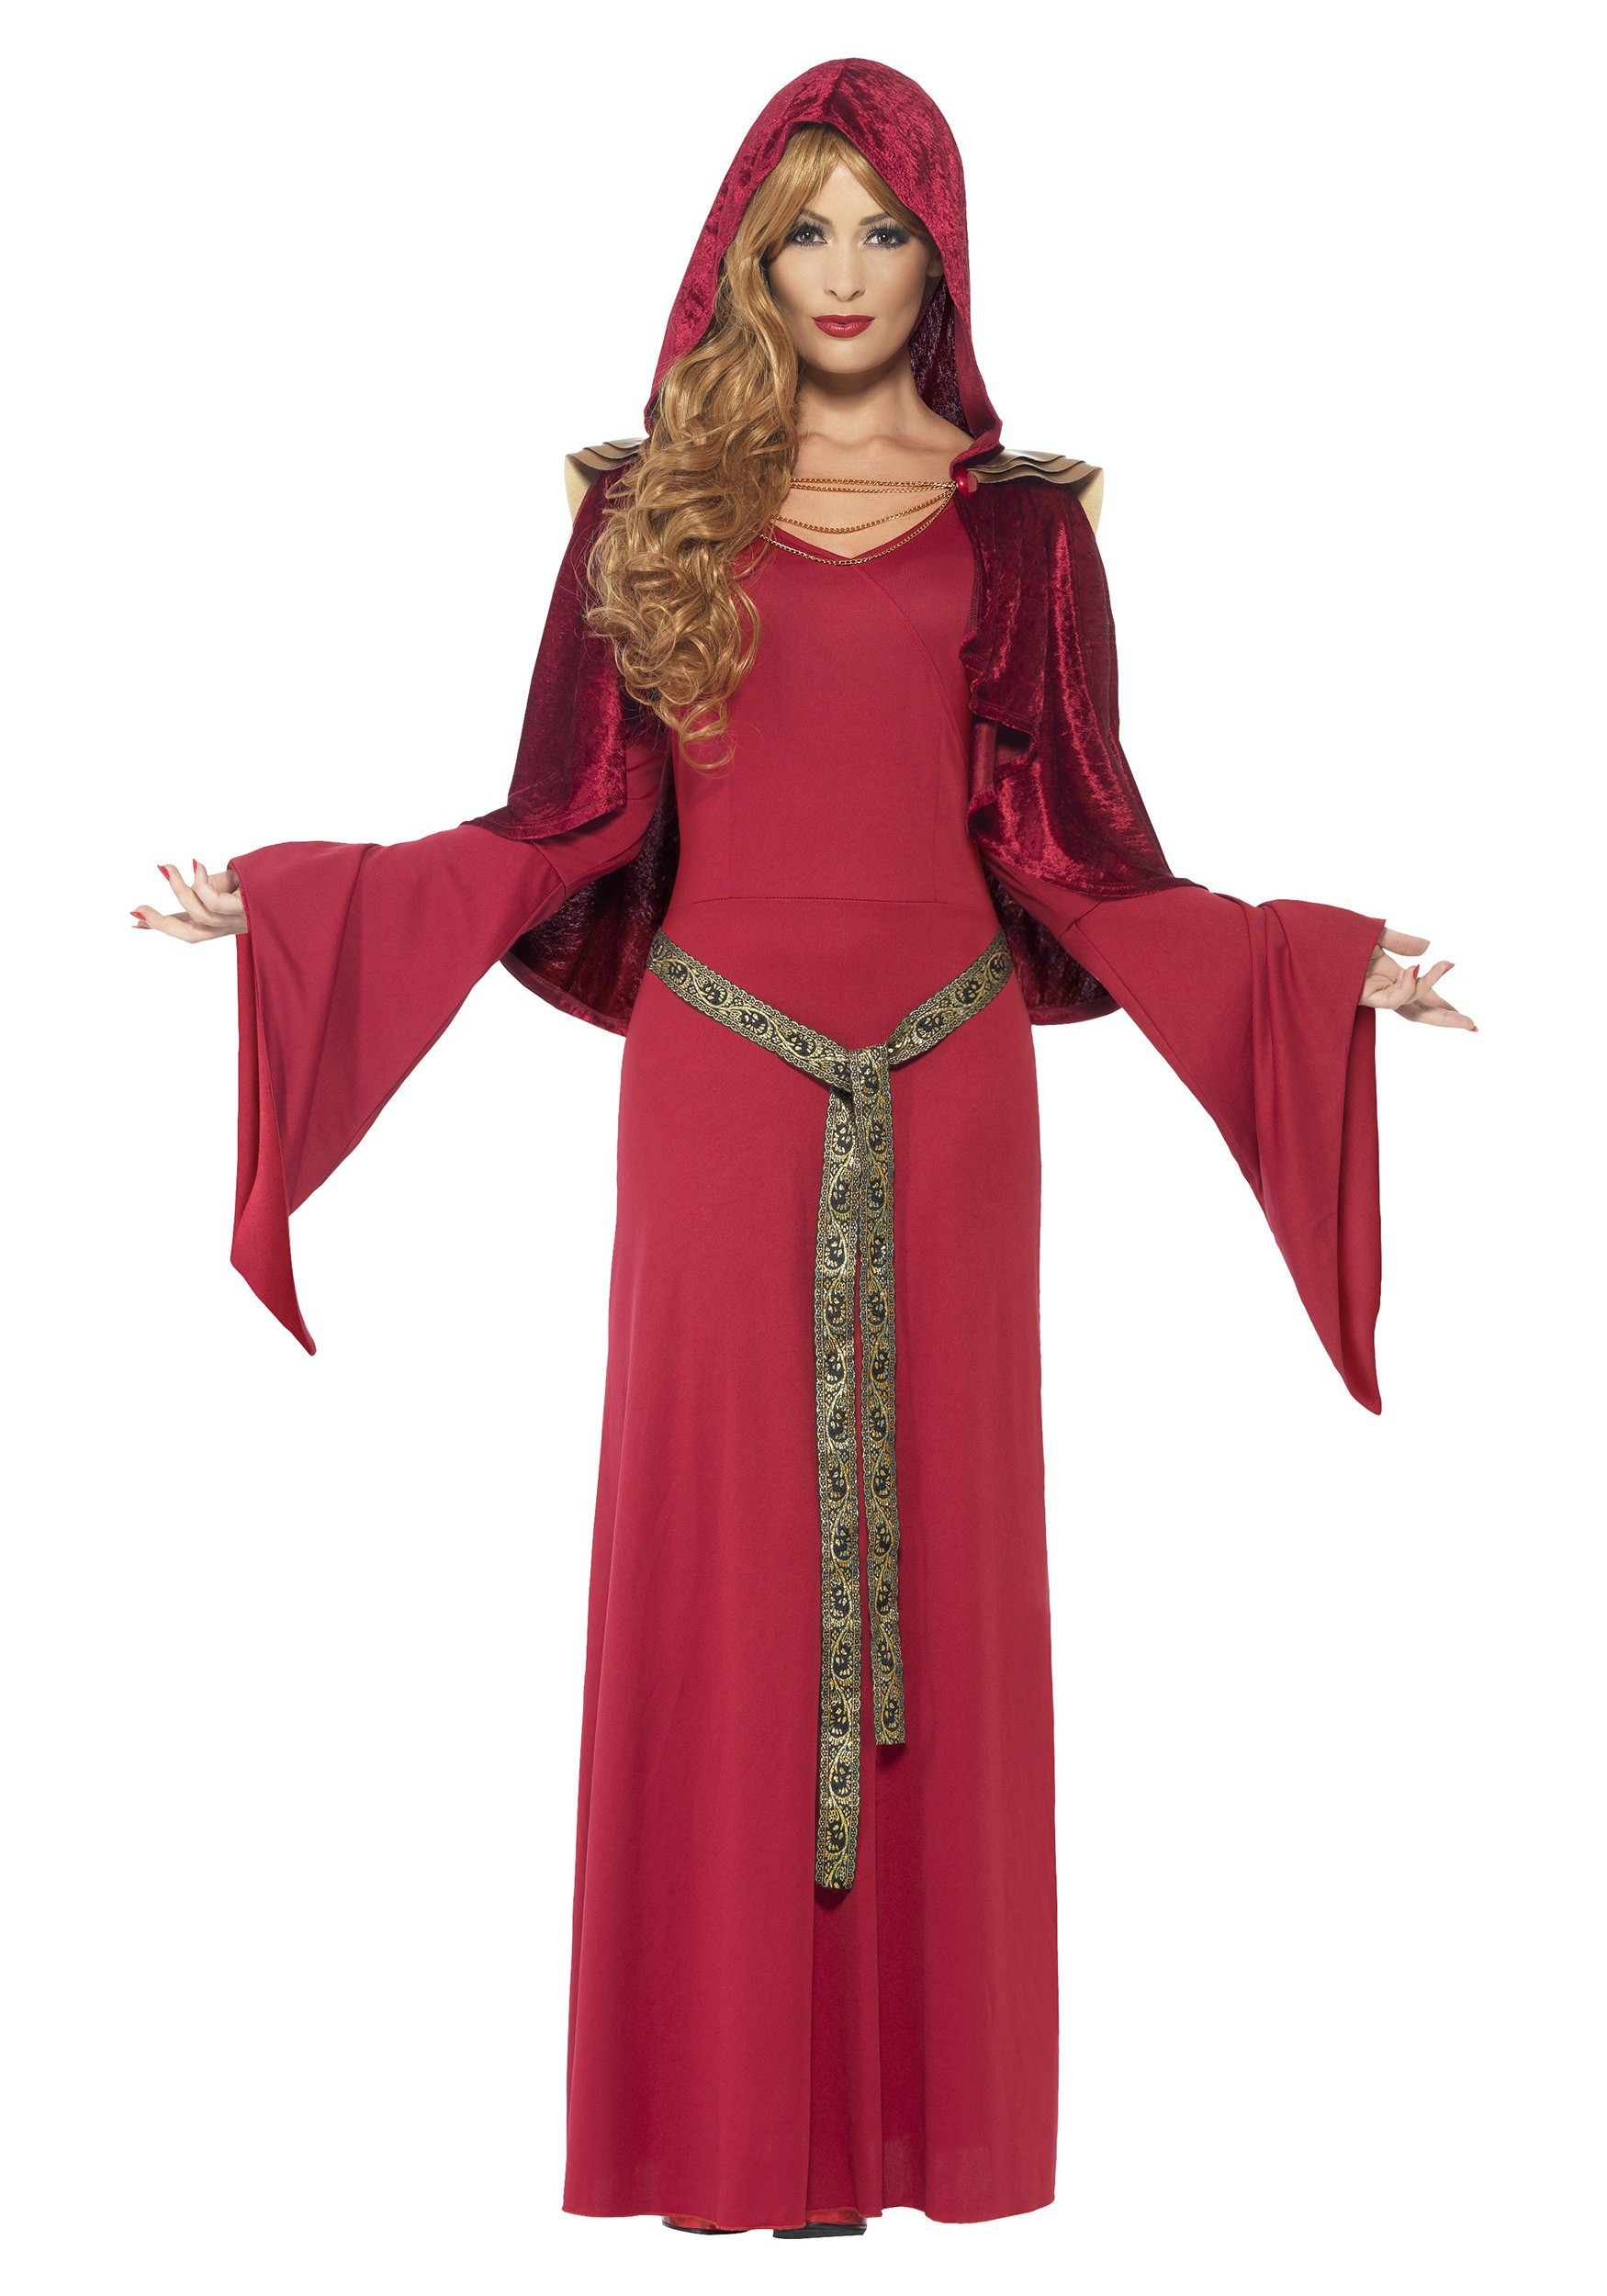 Charming Baby Boy Halloween Costumes #1: Womens-red-high-priestess-costume.jpg